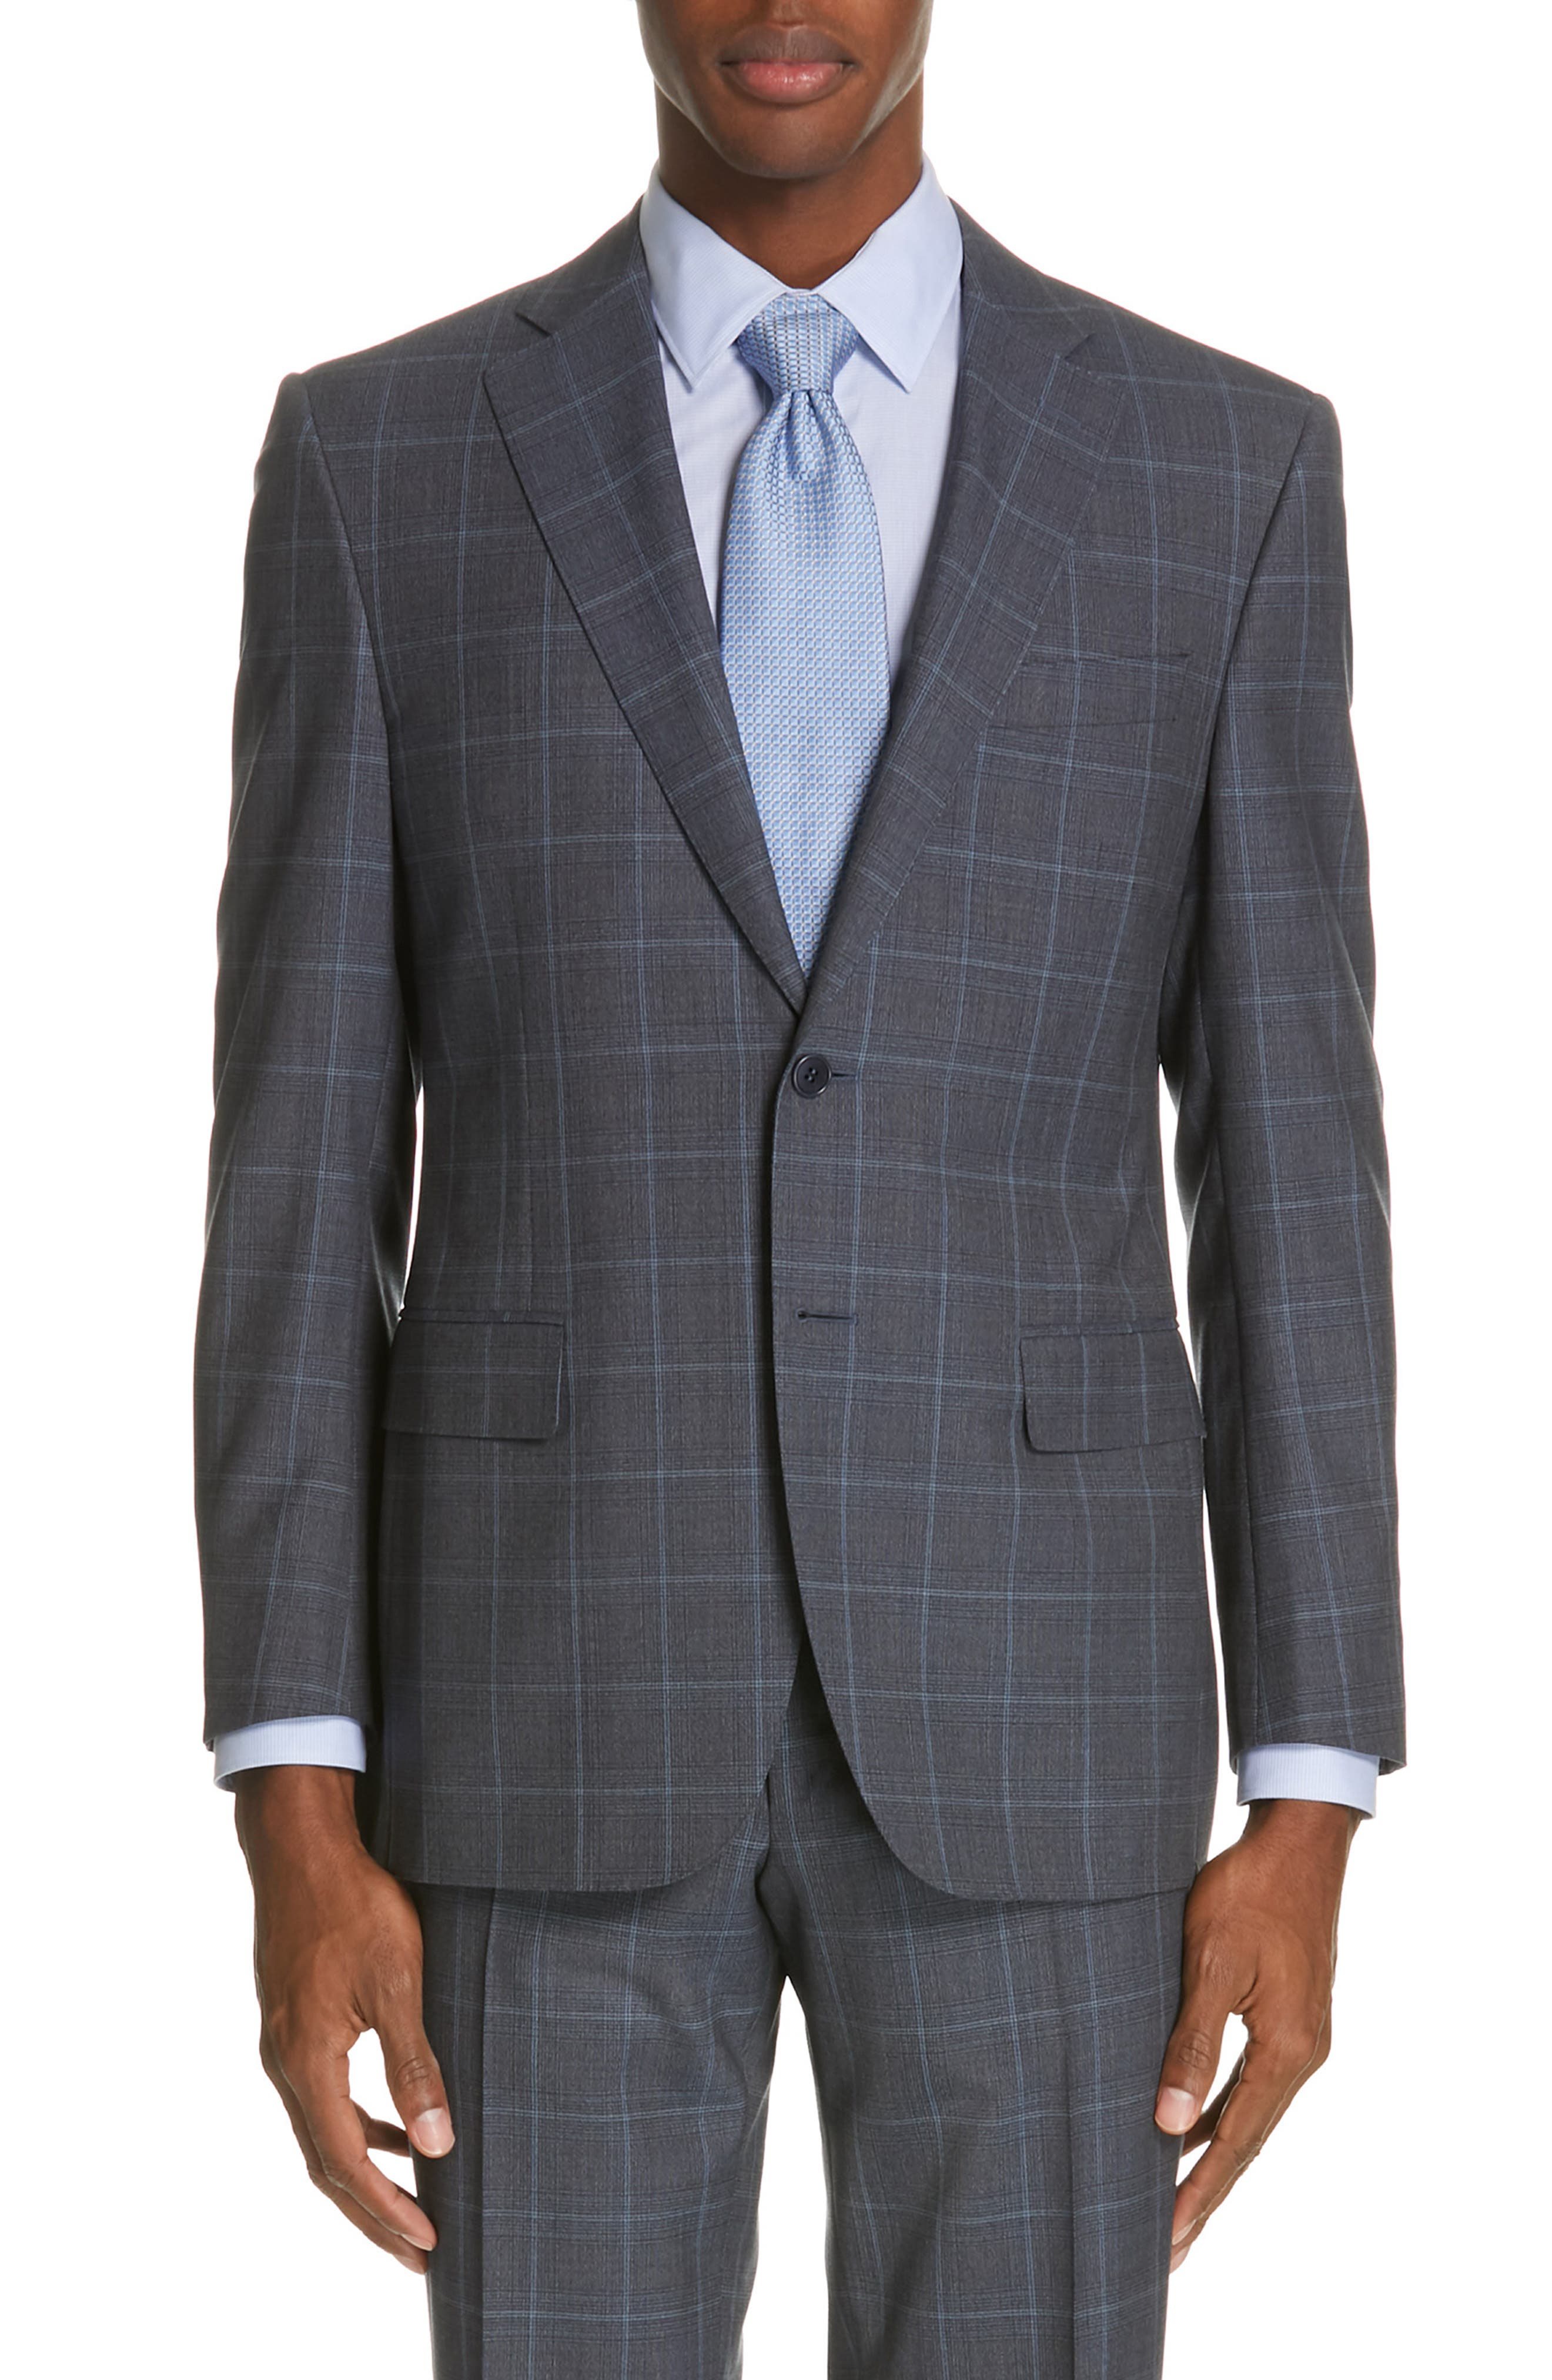 CANALI, Siena Soft Classic Fit Plaid Wool Suit, Alternate thumbnail 5, color, CHARCOAL